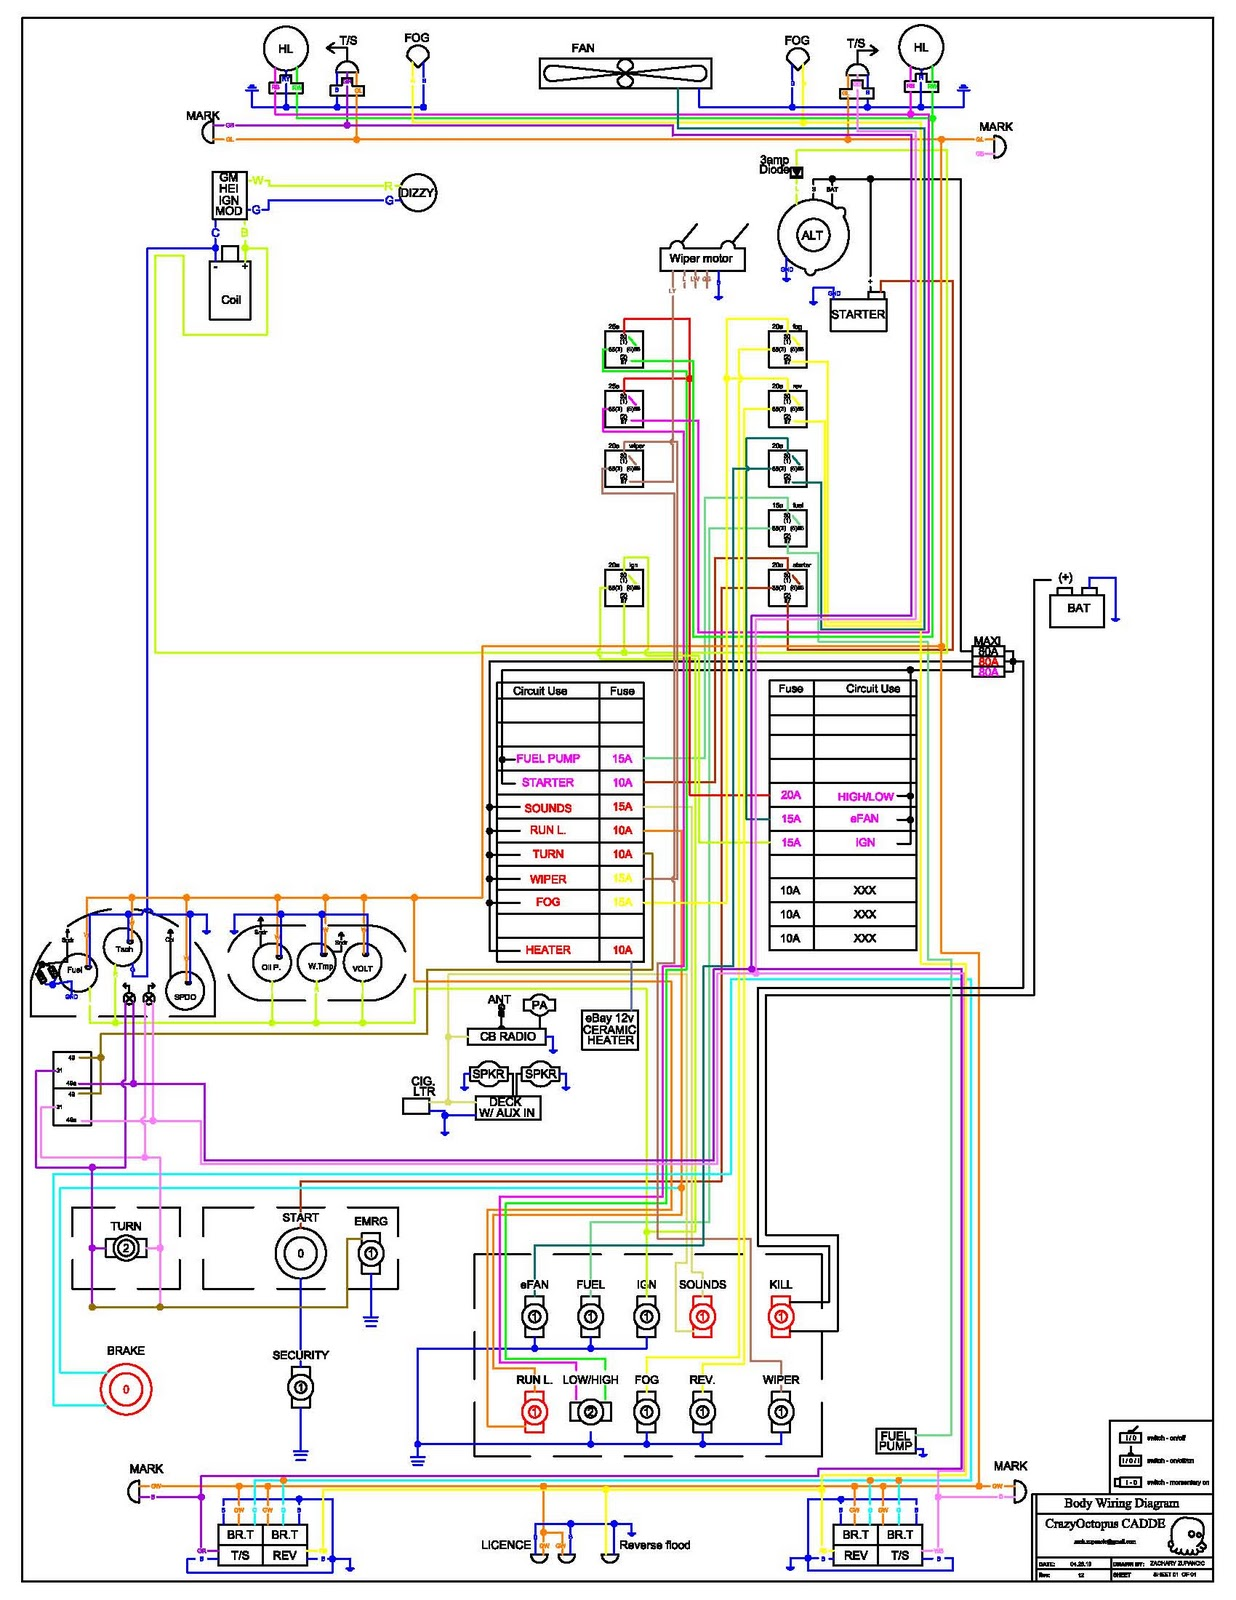 datsun 521 wiring diagram wiring diagram